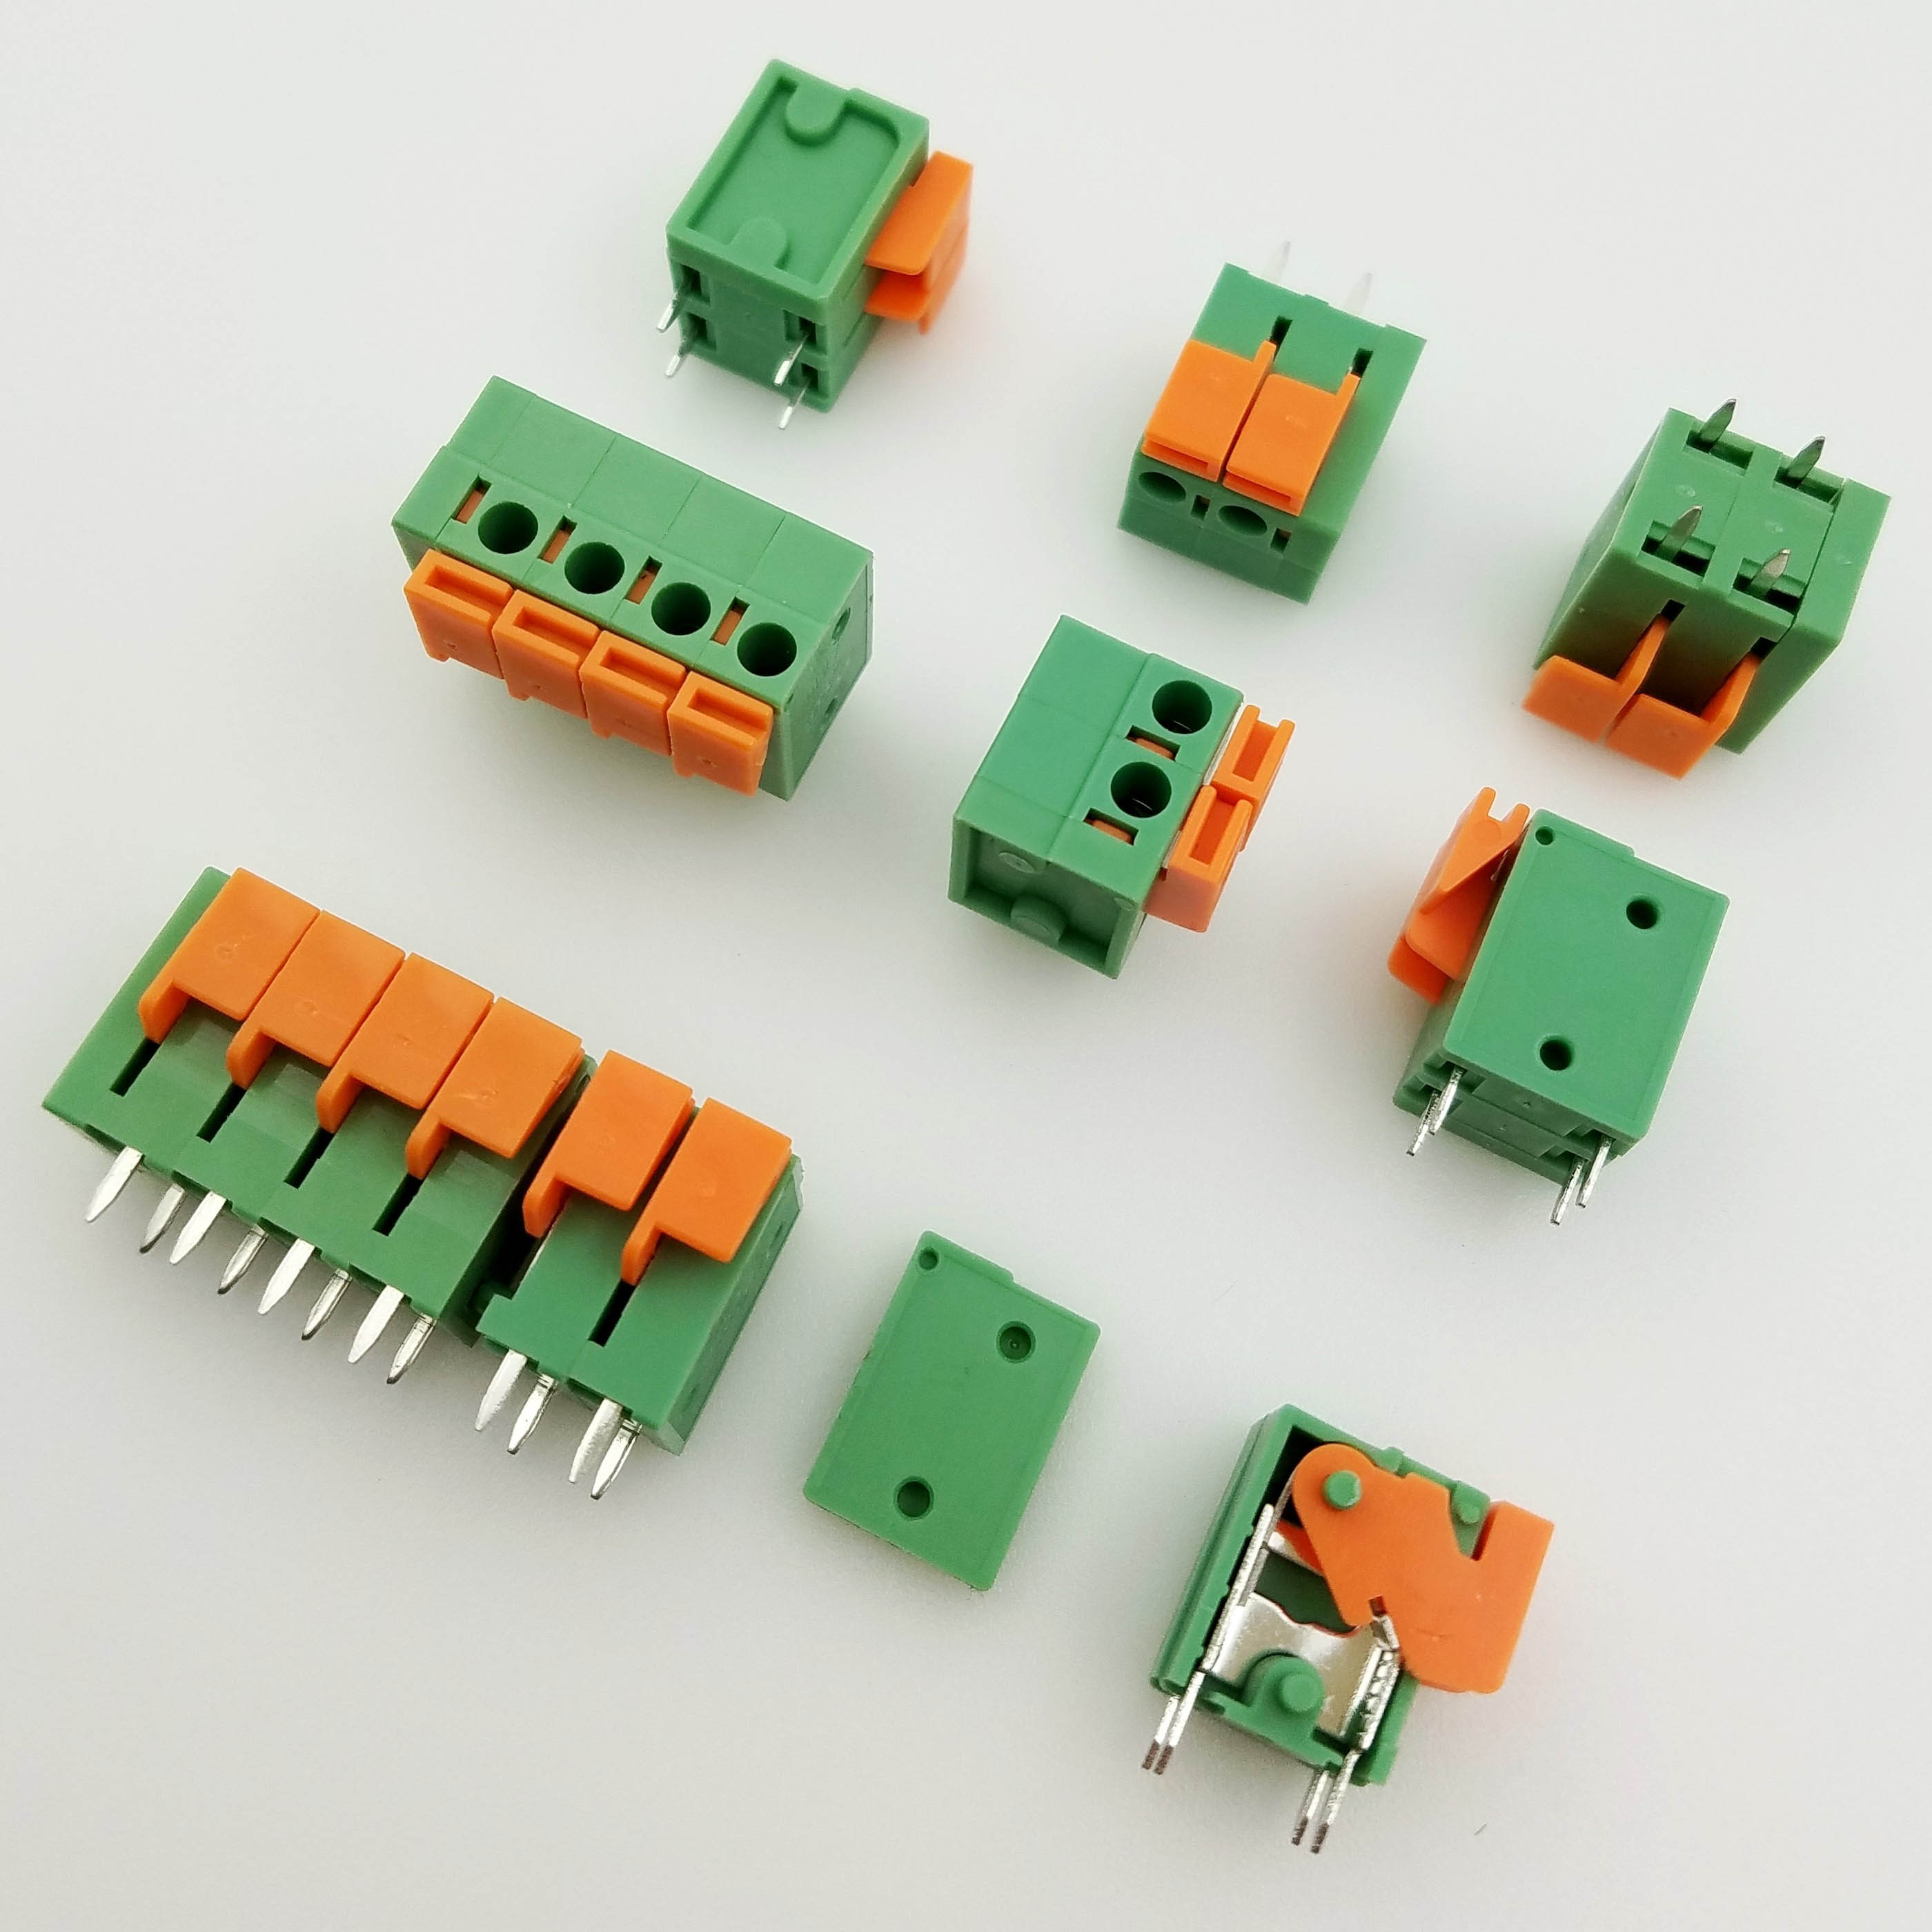 100pcs KF142V 5.08mm PCB Spring Terminal Block KF128-5.08 2P 3P 4P 5P 6P 7p 8p 9p 10p Terminals Connector PCB Mounted Screw видеорегистратор mio mivue 788